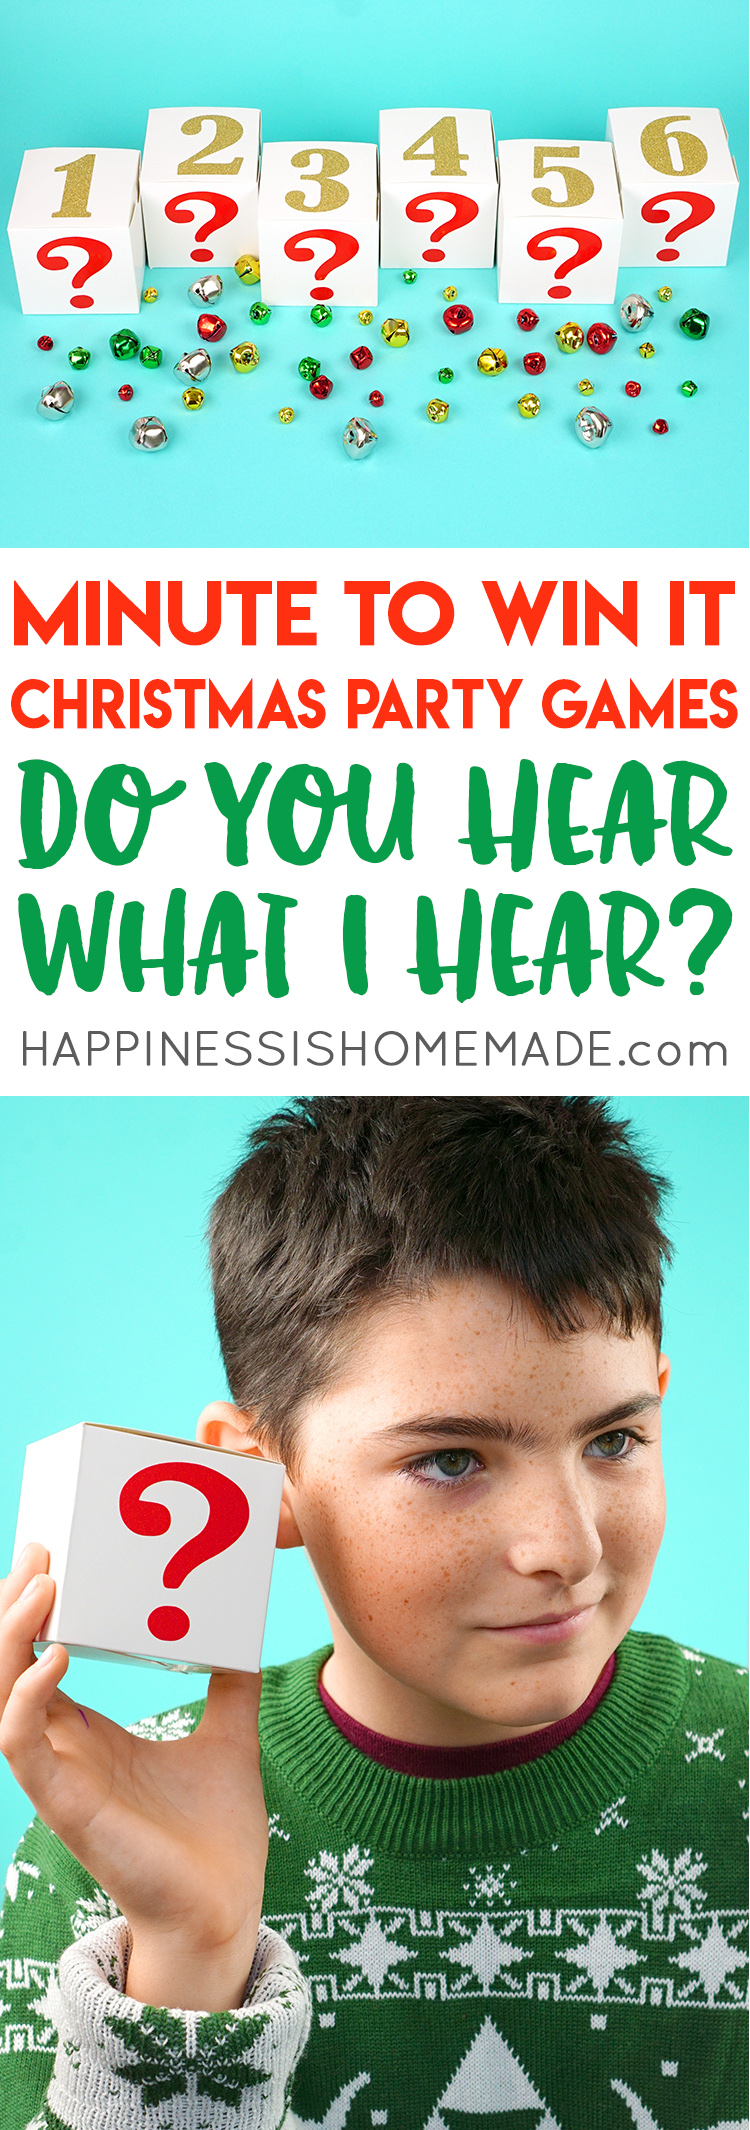 christmas party games minute to win it for all ages happiness 31174